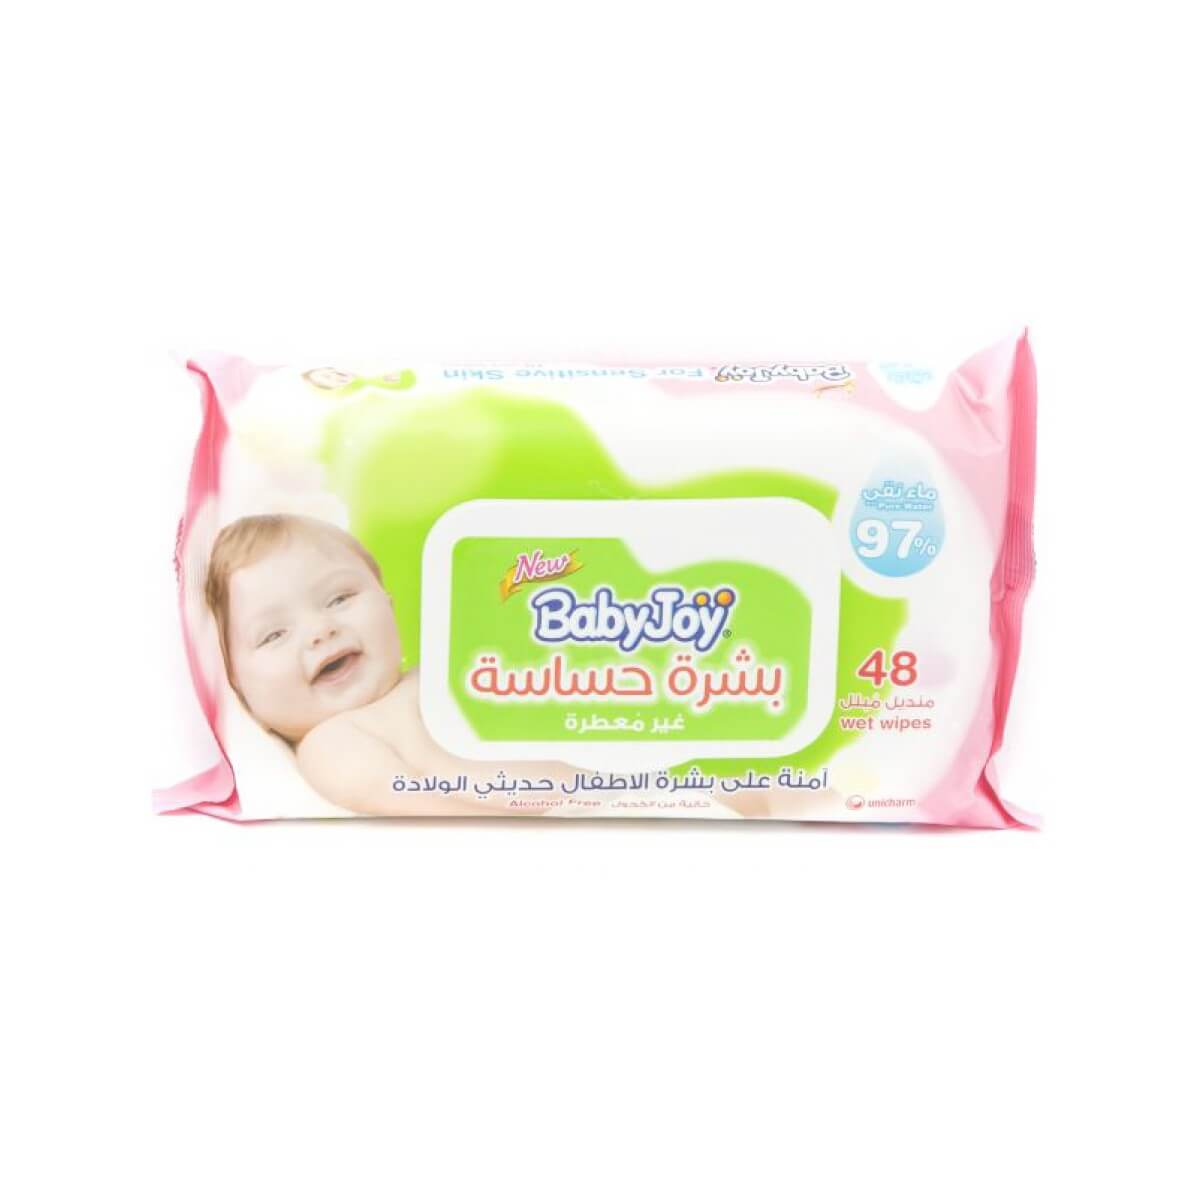 BabyJoy 48  Wet Wipes Promotes Healthy Skin